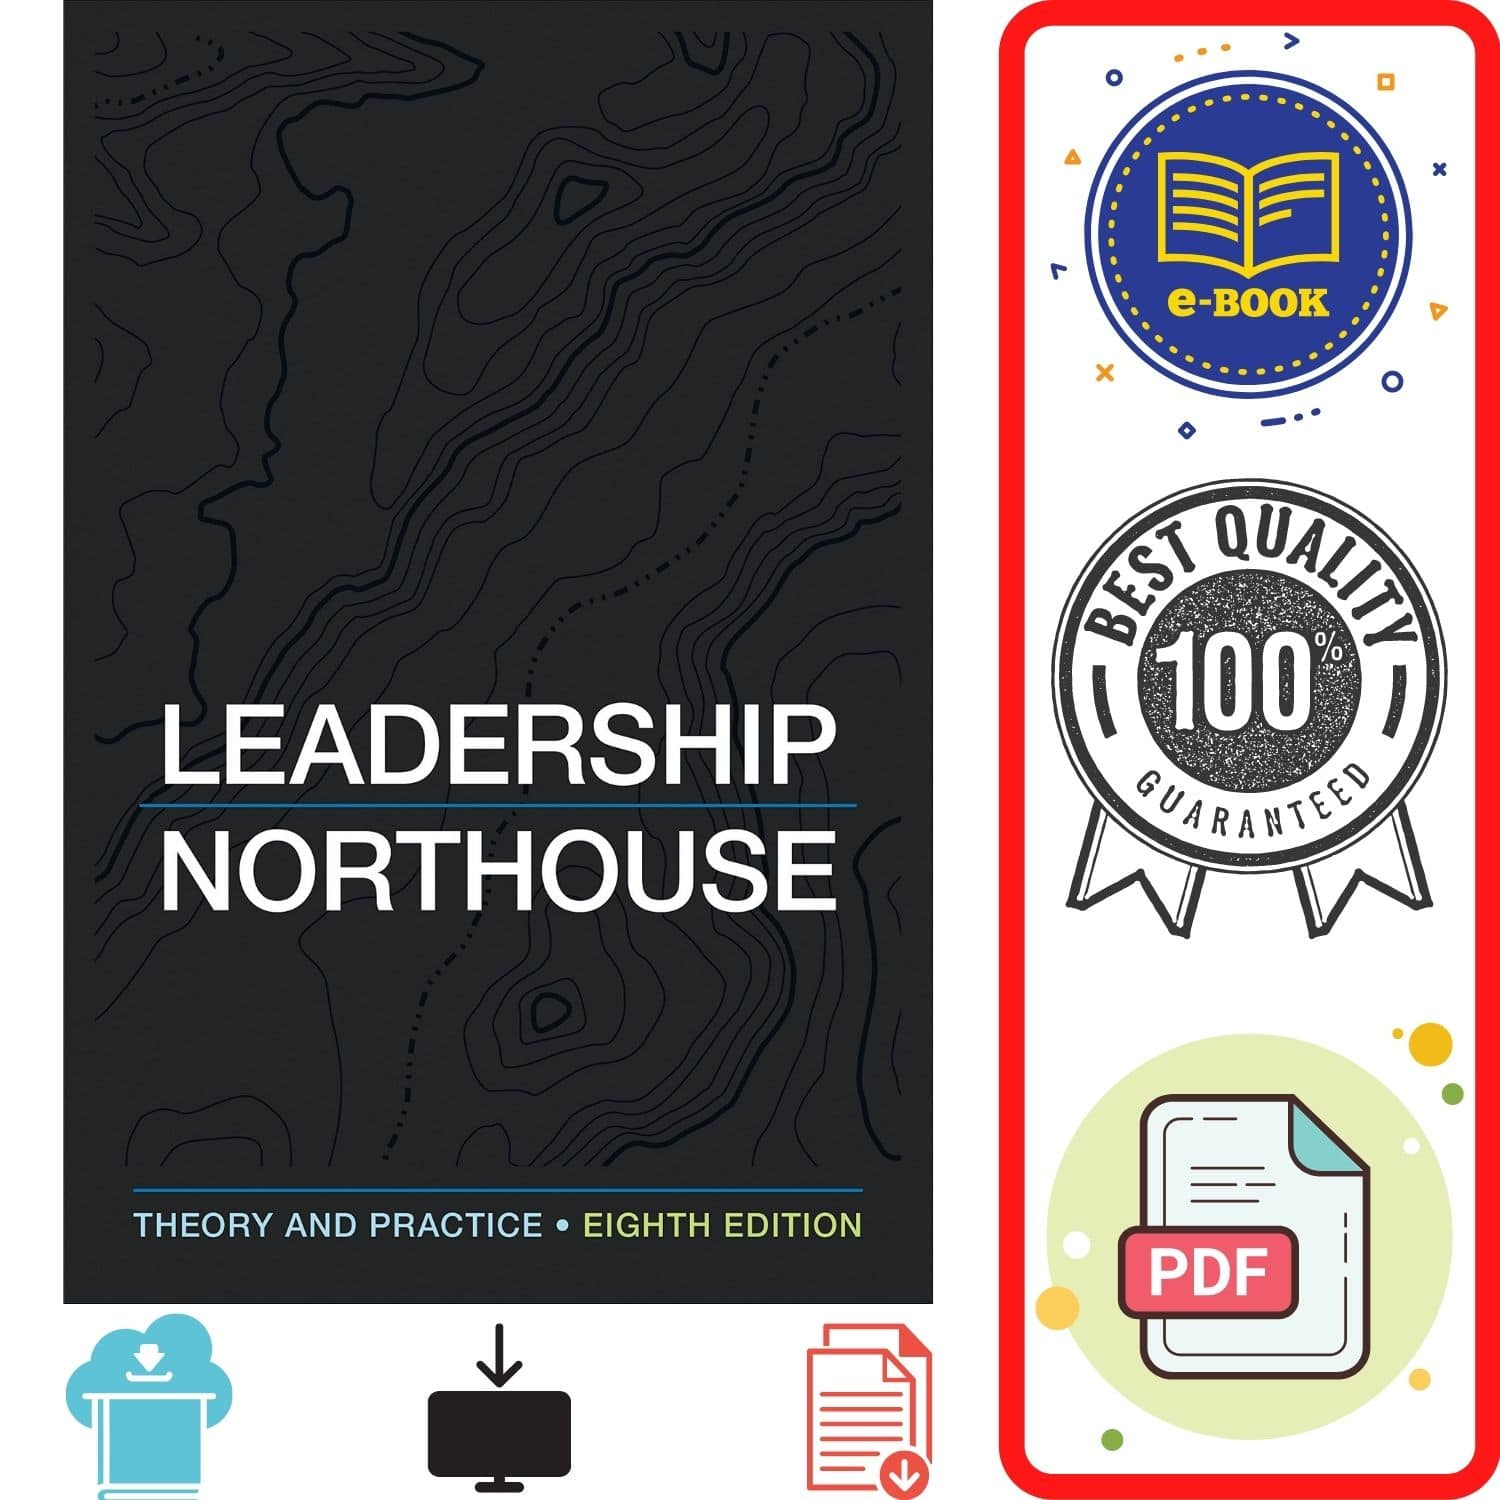 Leadership Theory And Practice 7th Edition Pdf